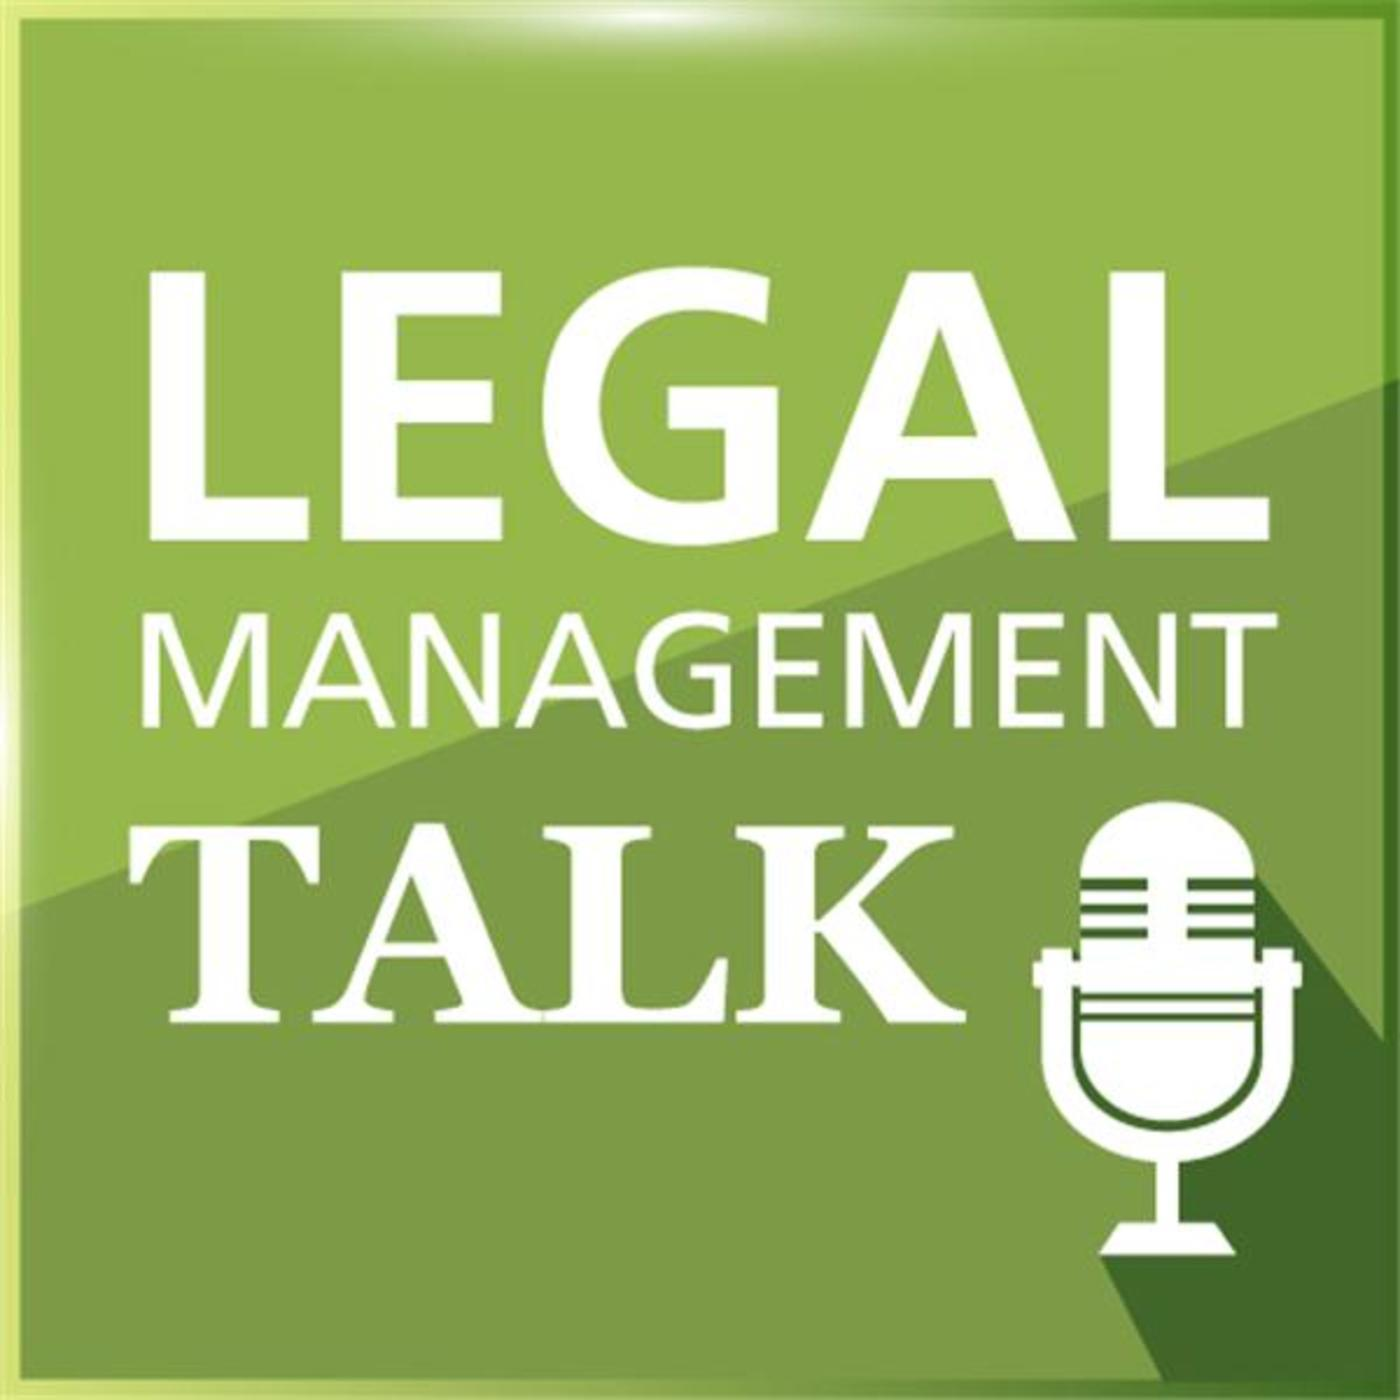 Legal Management Talk